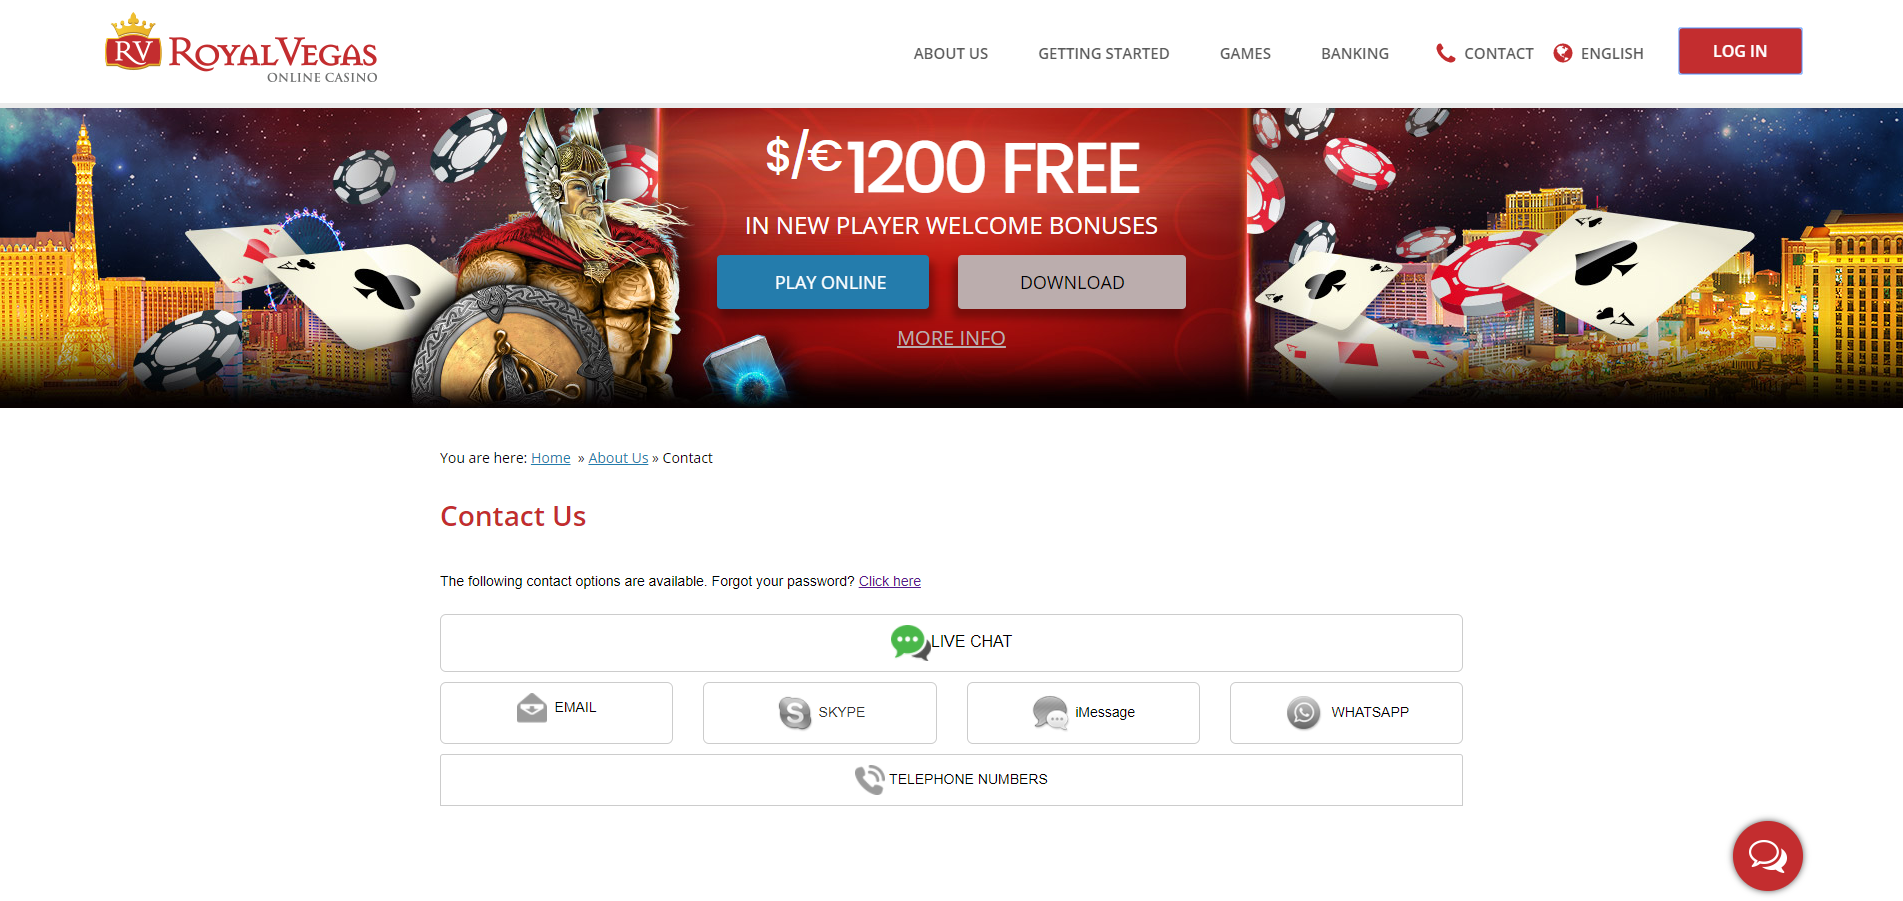 Platinum Play Casino Online Review With Promotions & Bonuses